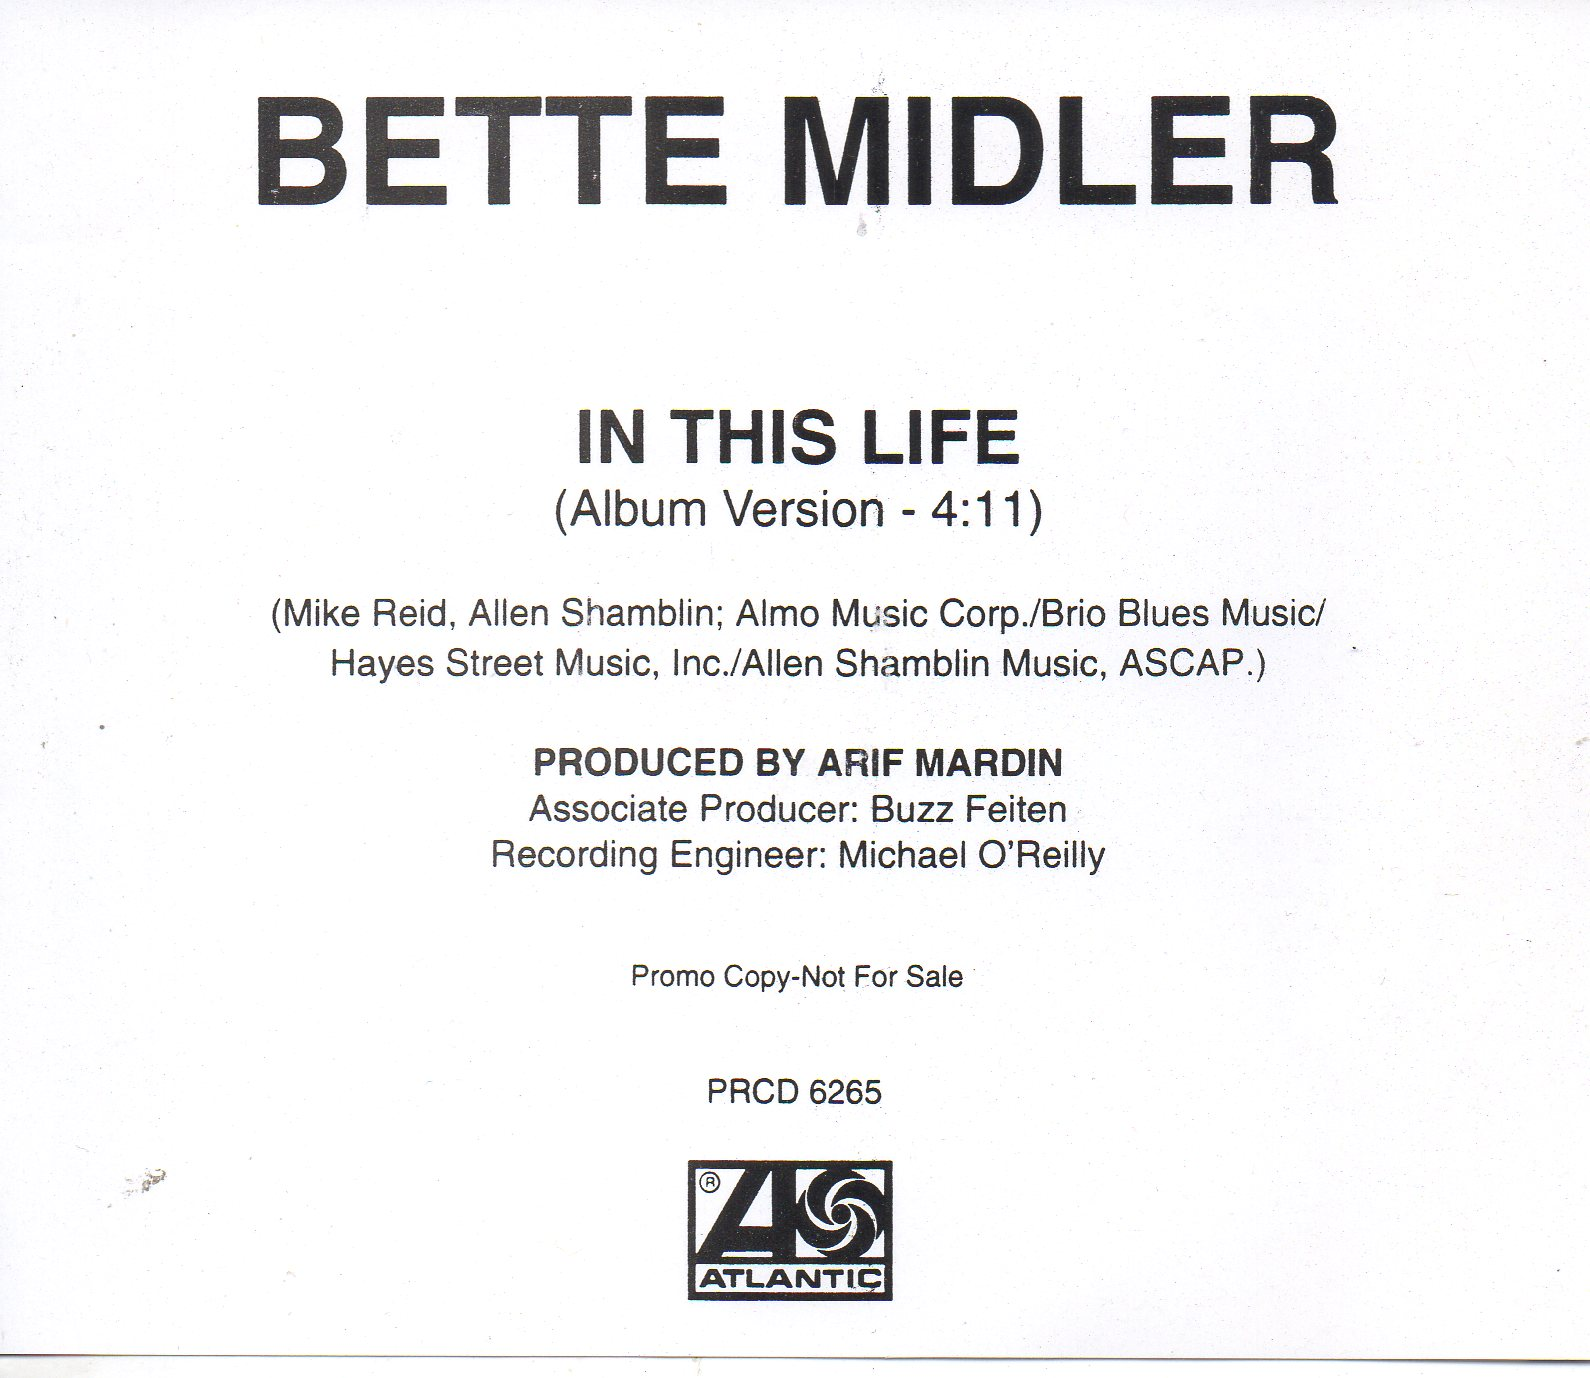 BETTE MIDLER - THE BEATLES - SOUNDTRACK FOR THE BO - In my life Promo USA 1-track jewel case - MCD